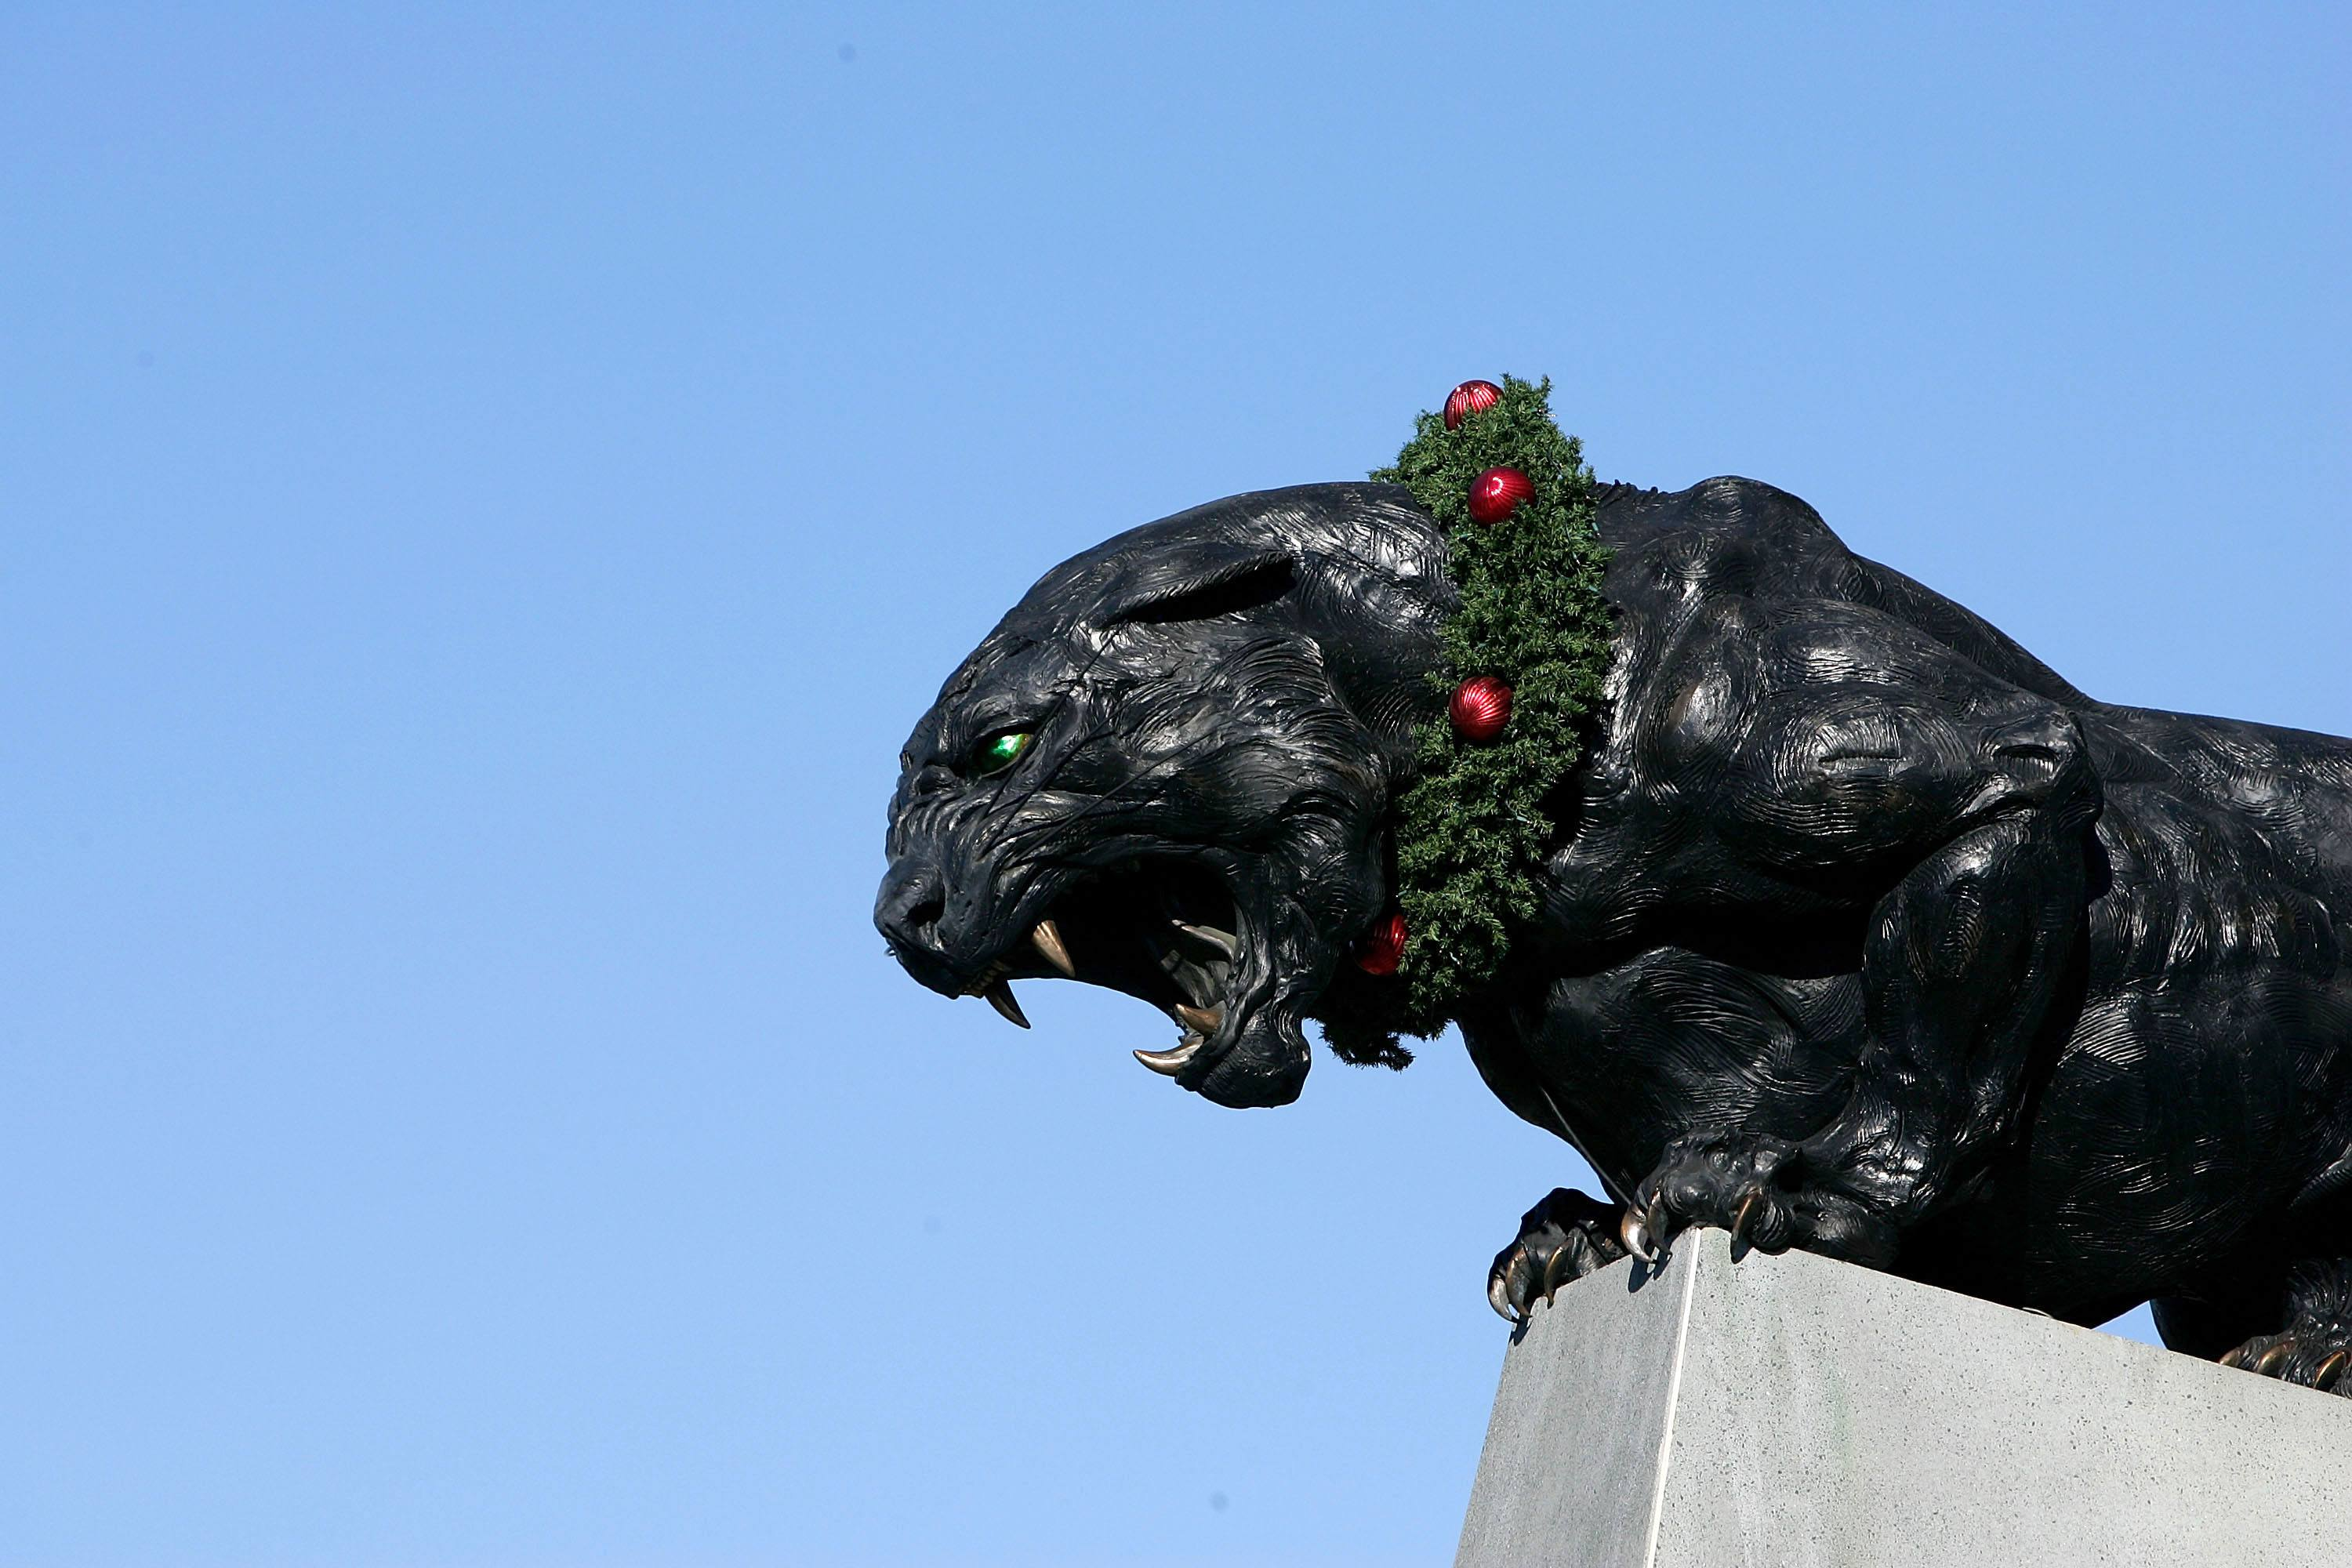 a black panther statue wearing a christmas wreath